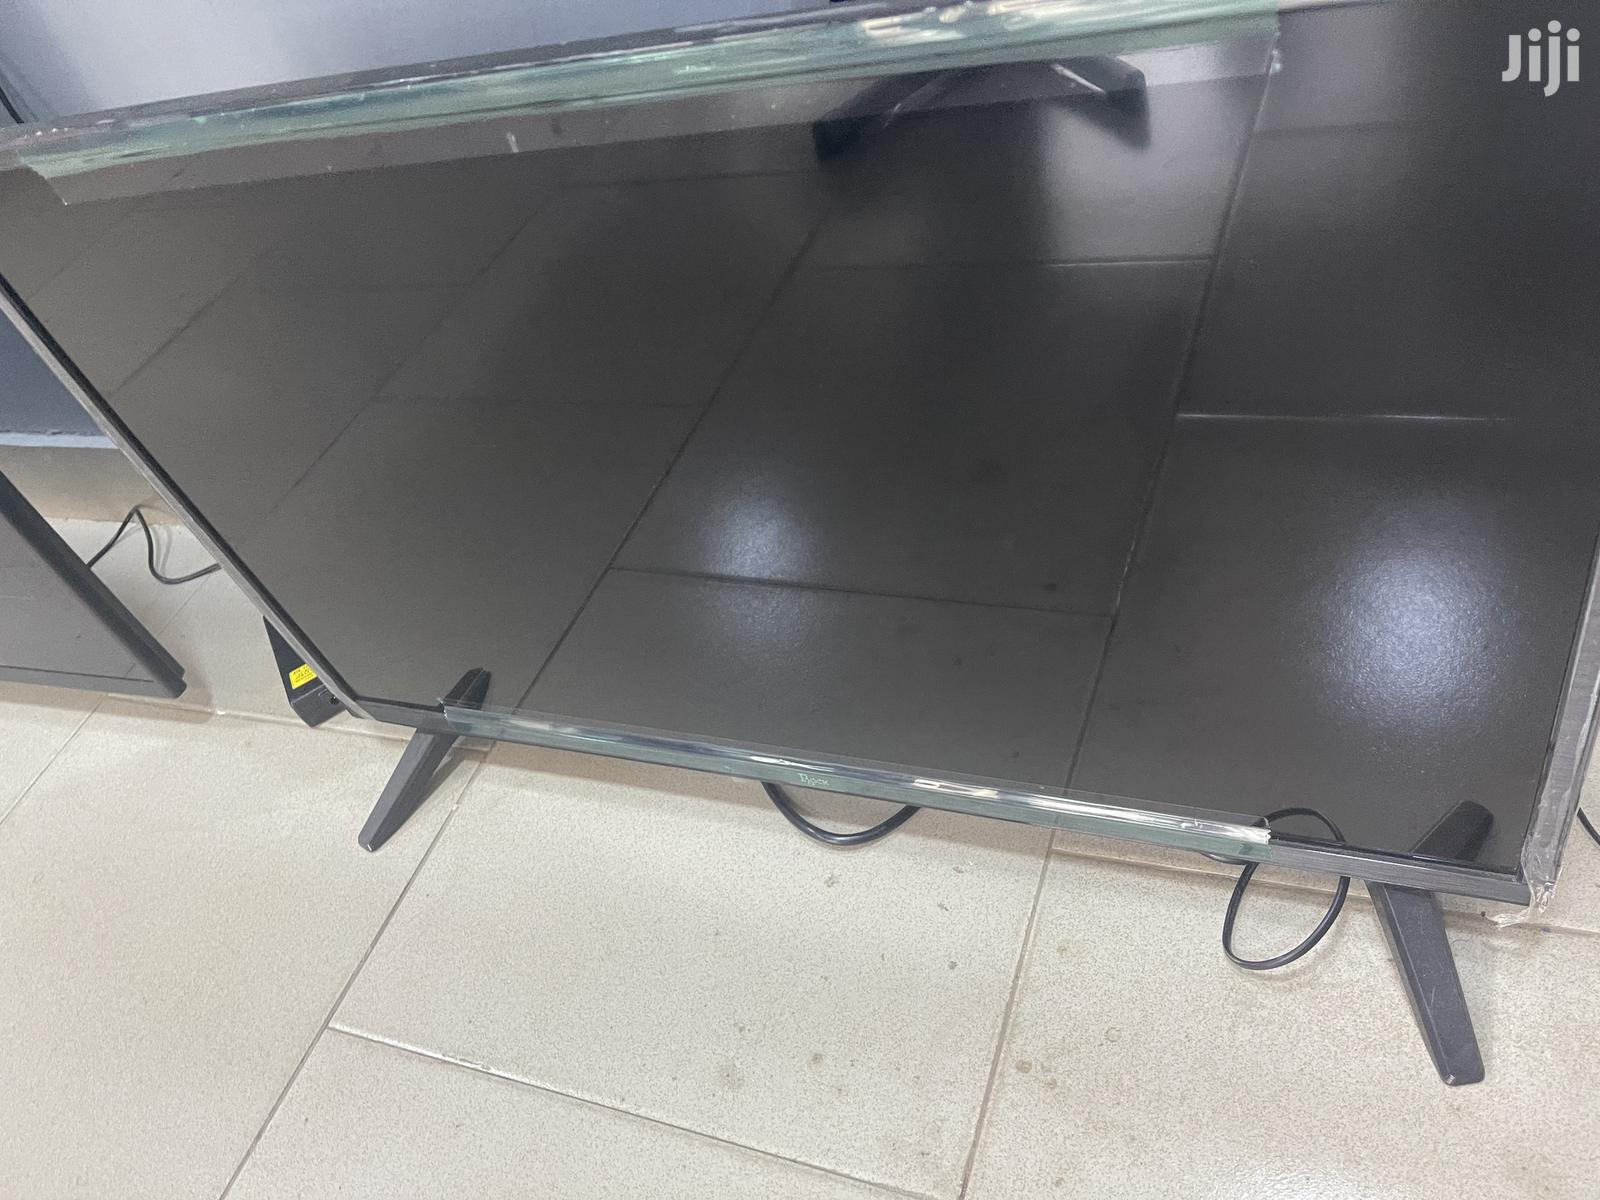 32 Inches ROCH Digital Satellite for Sale | TV & DVD Equipment for sale in Achimota, Greater Accra, Ghana